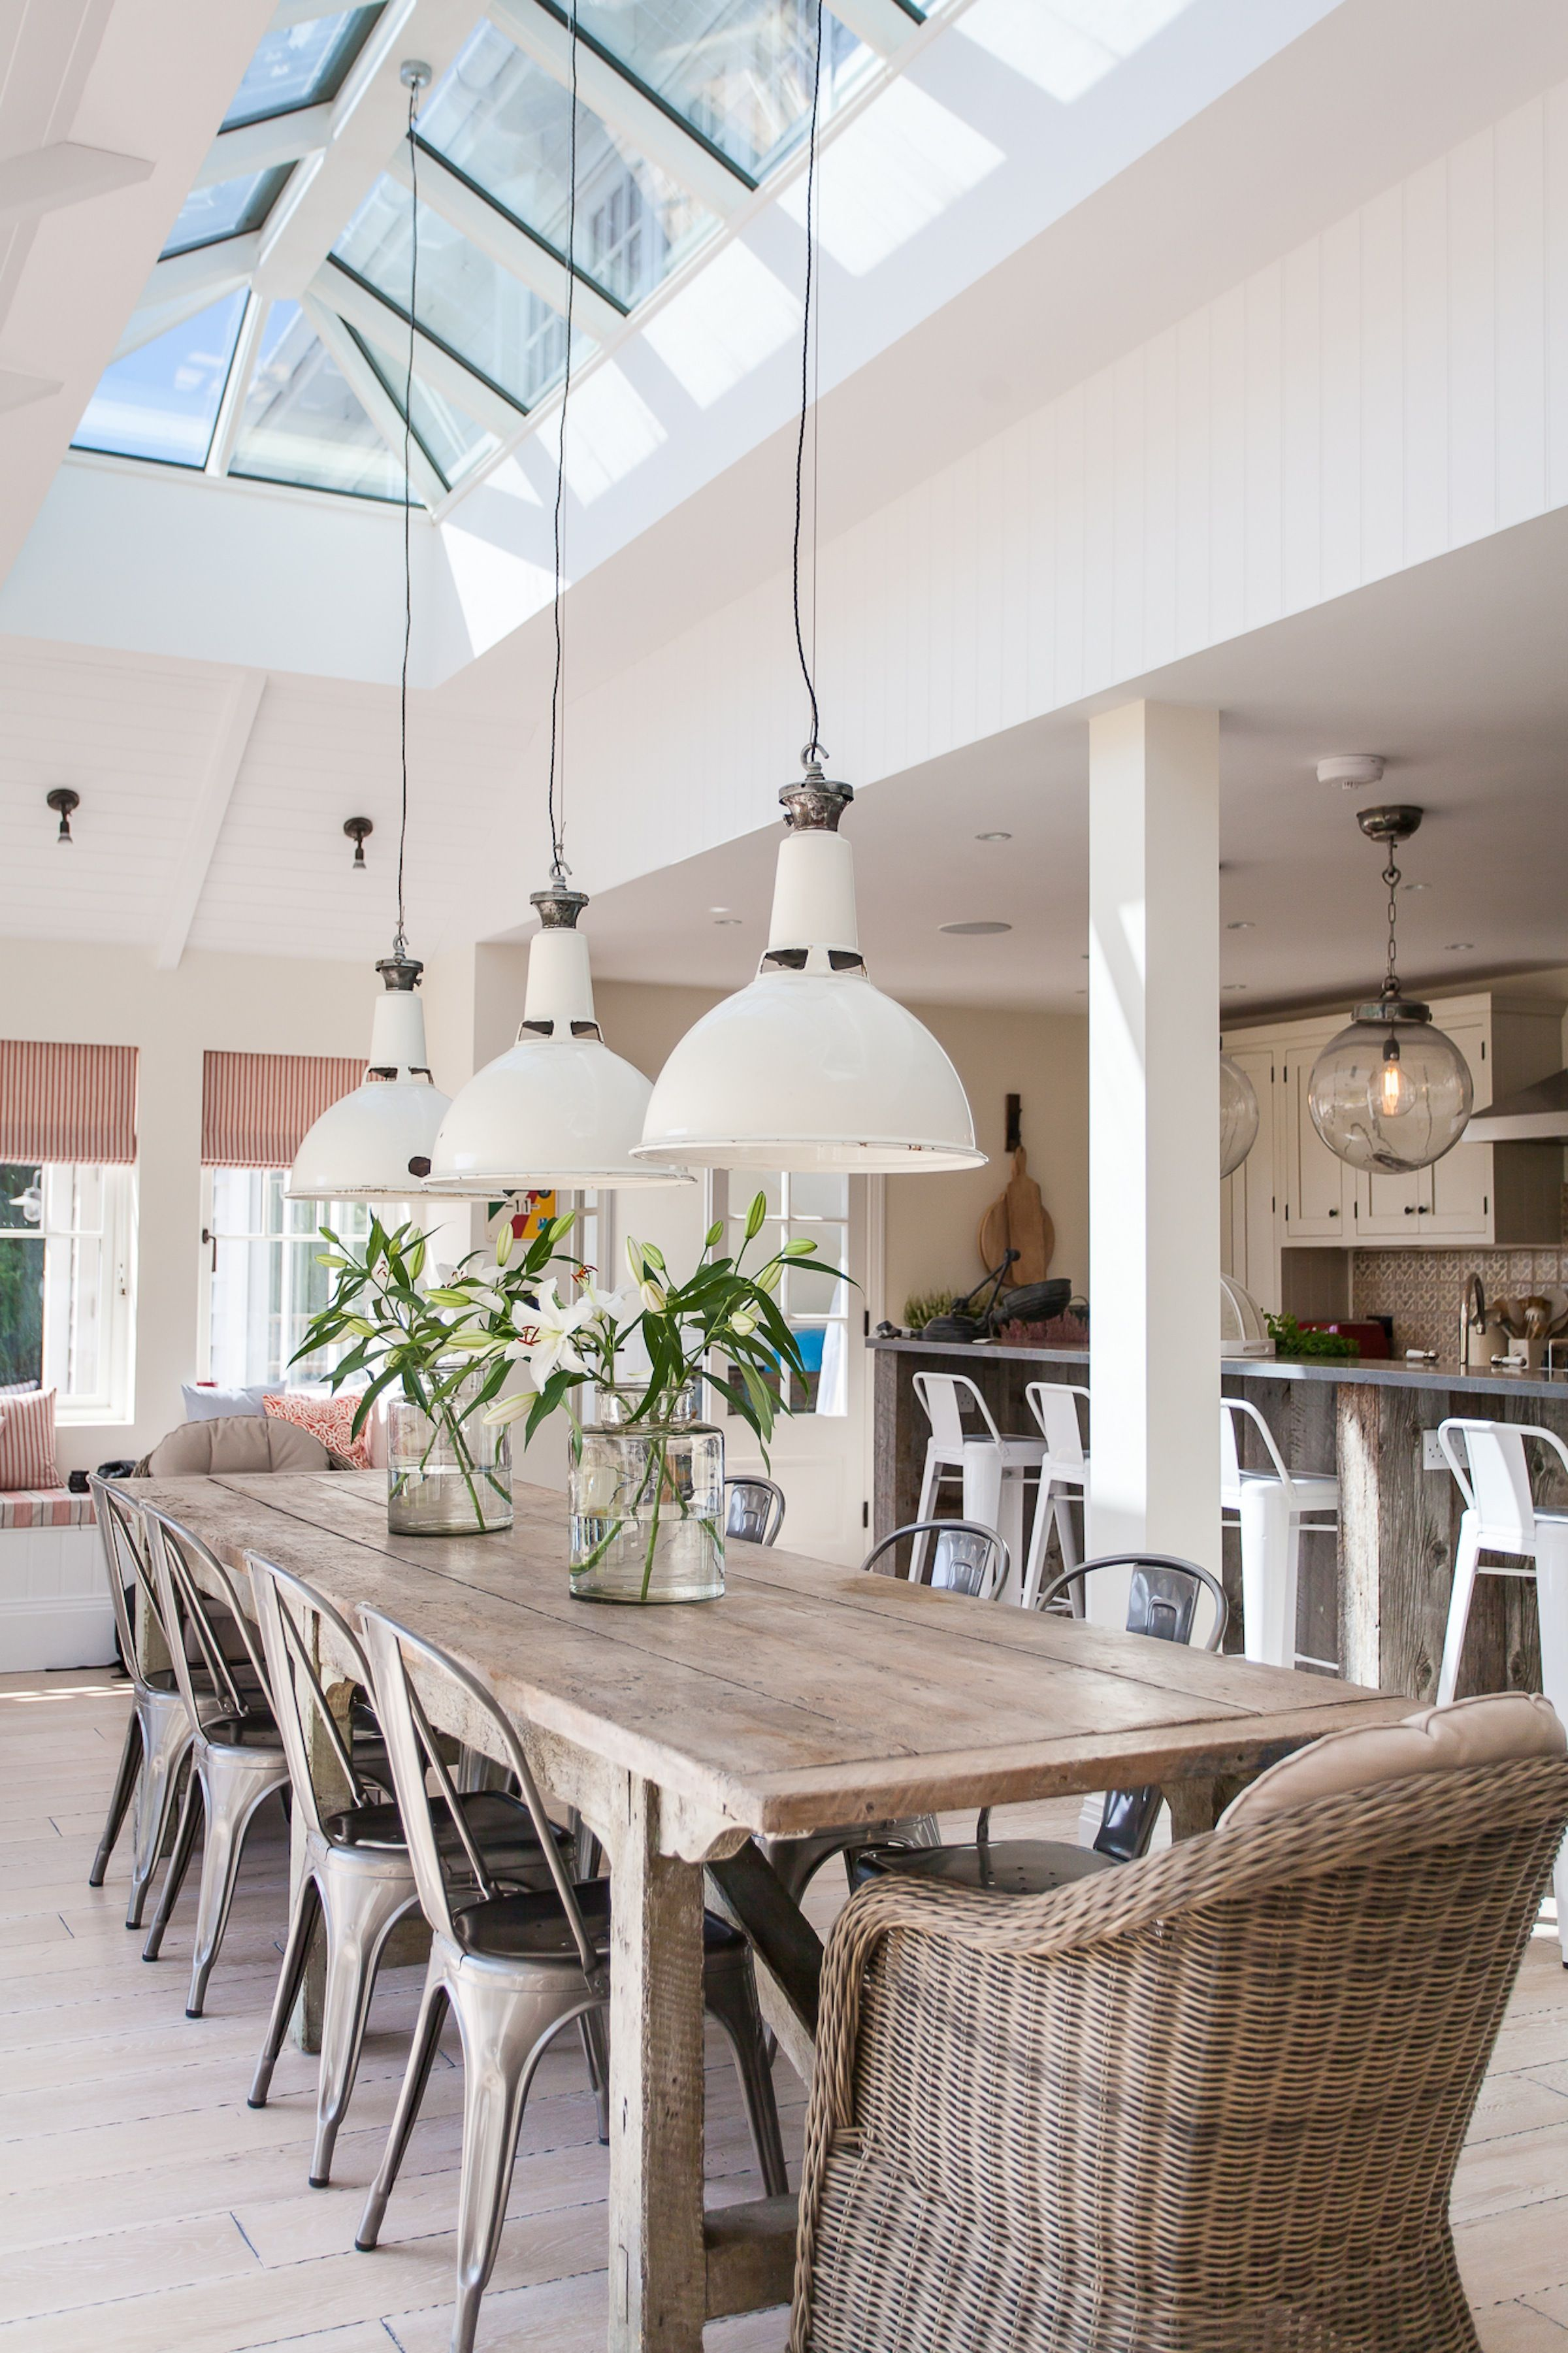 table and chairs skylight SeaCloud ideas Pinterest